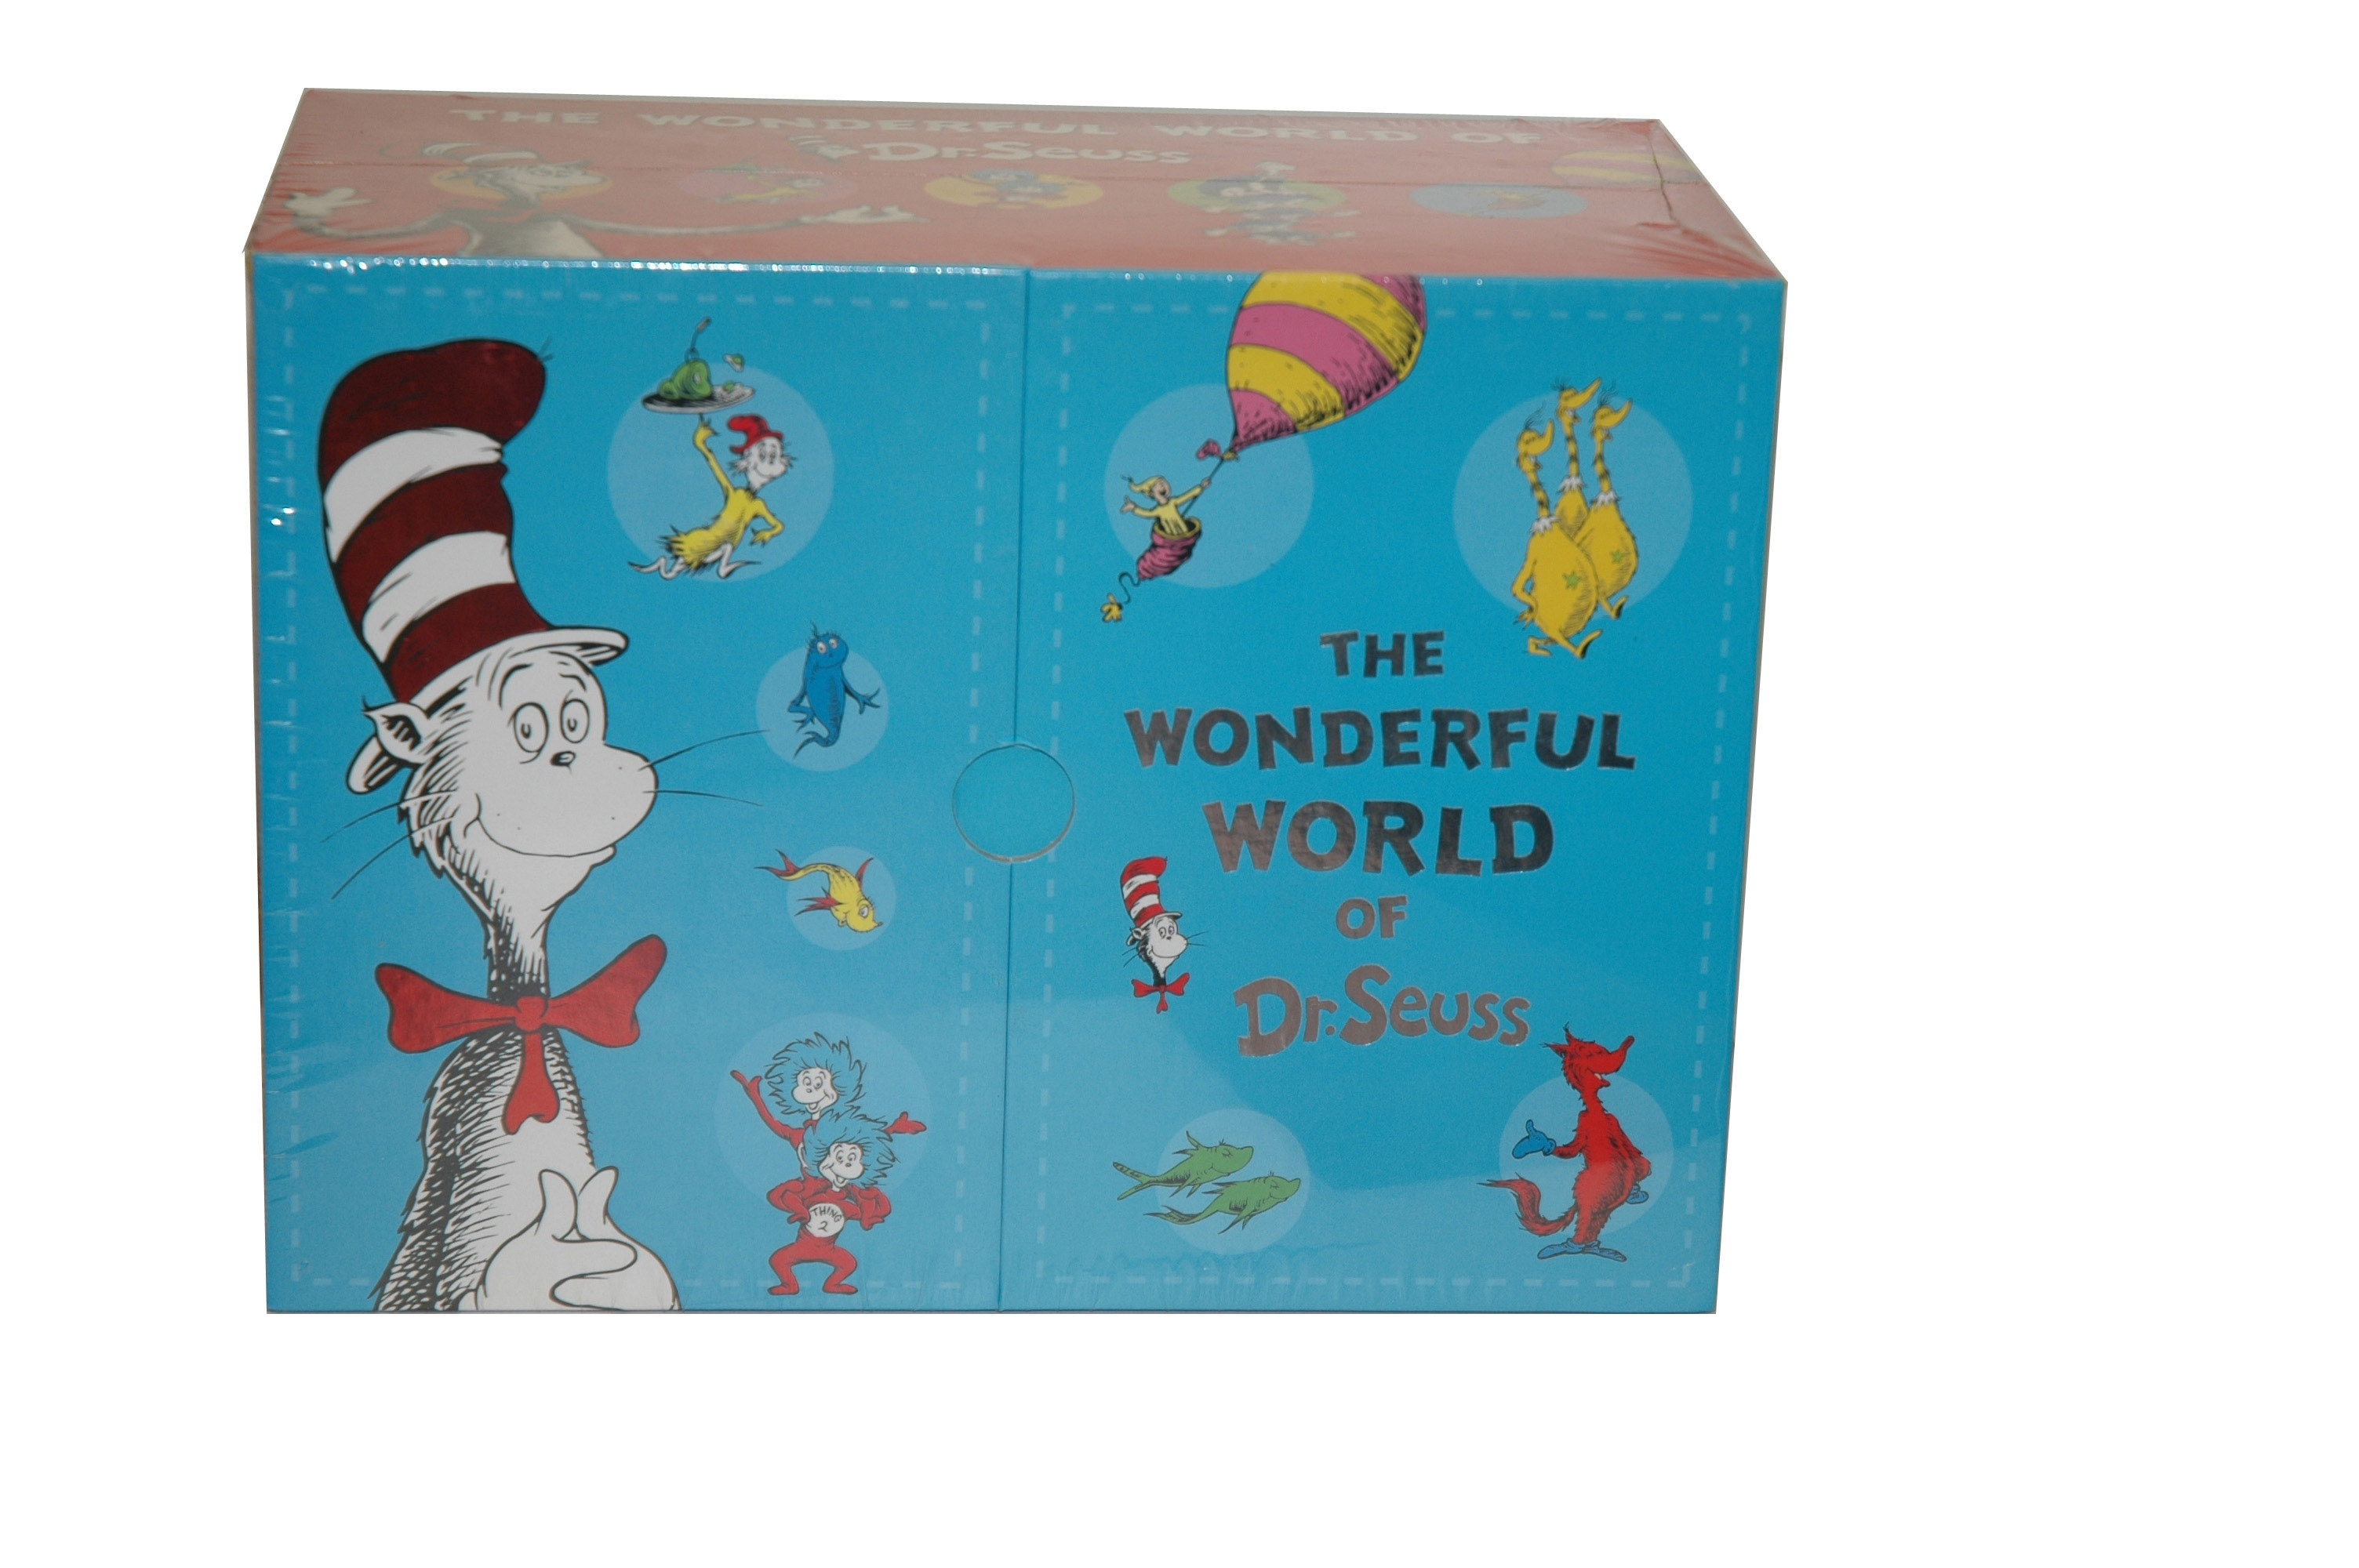 The Wonderful World of Dr Seuss (Hardcover) by Dr. Seuss, ISBN: 9780007823505